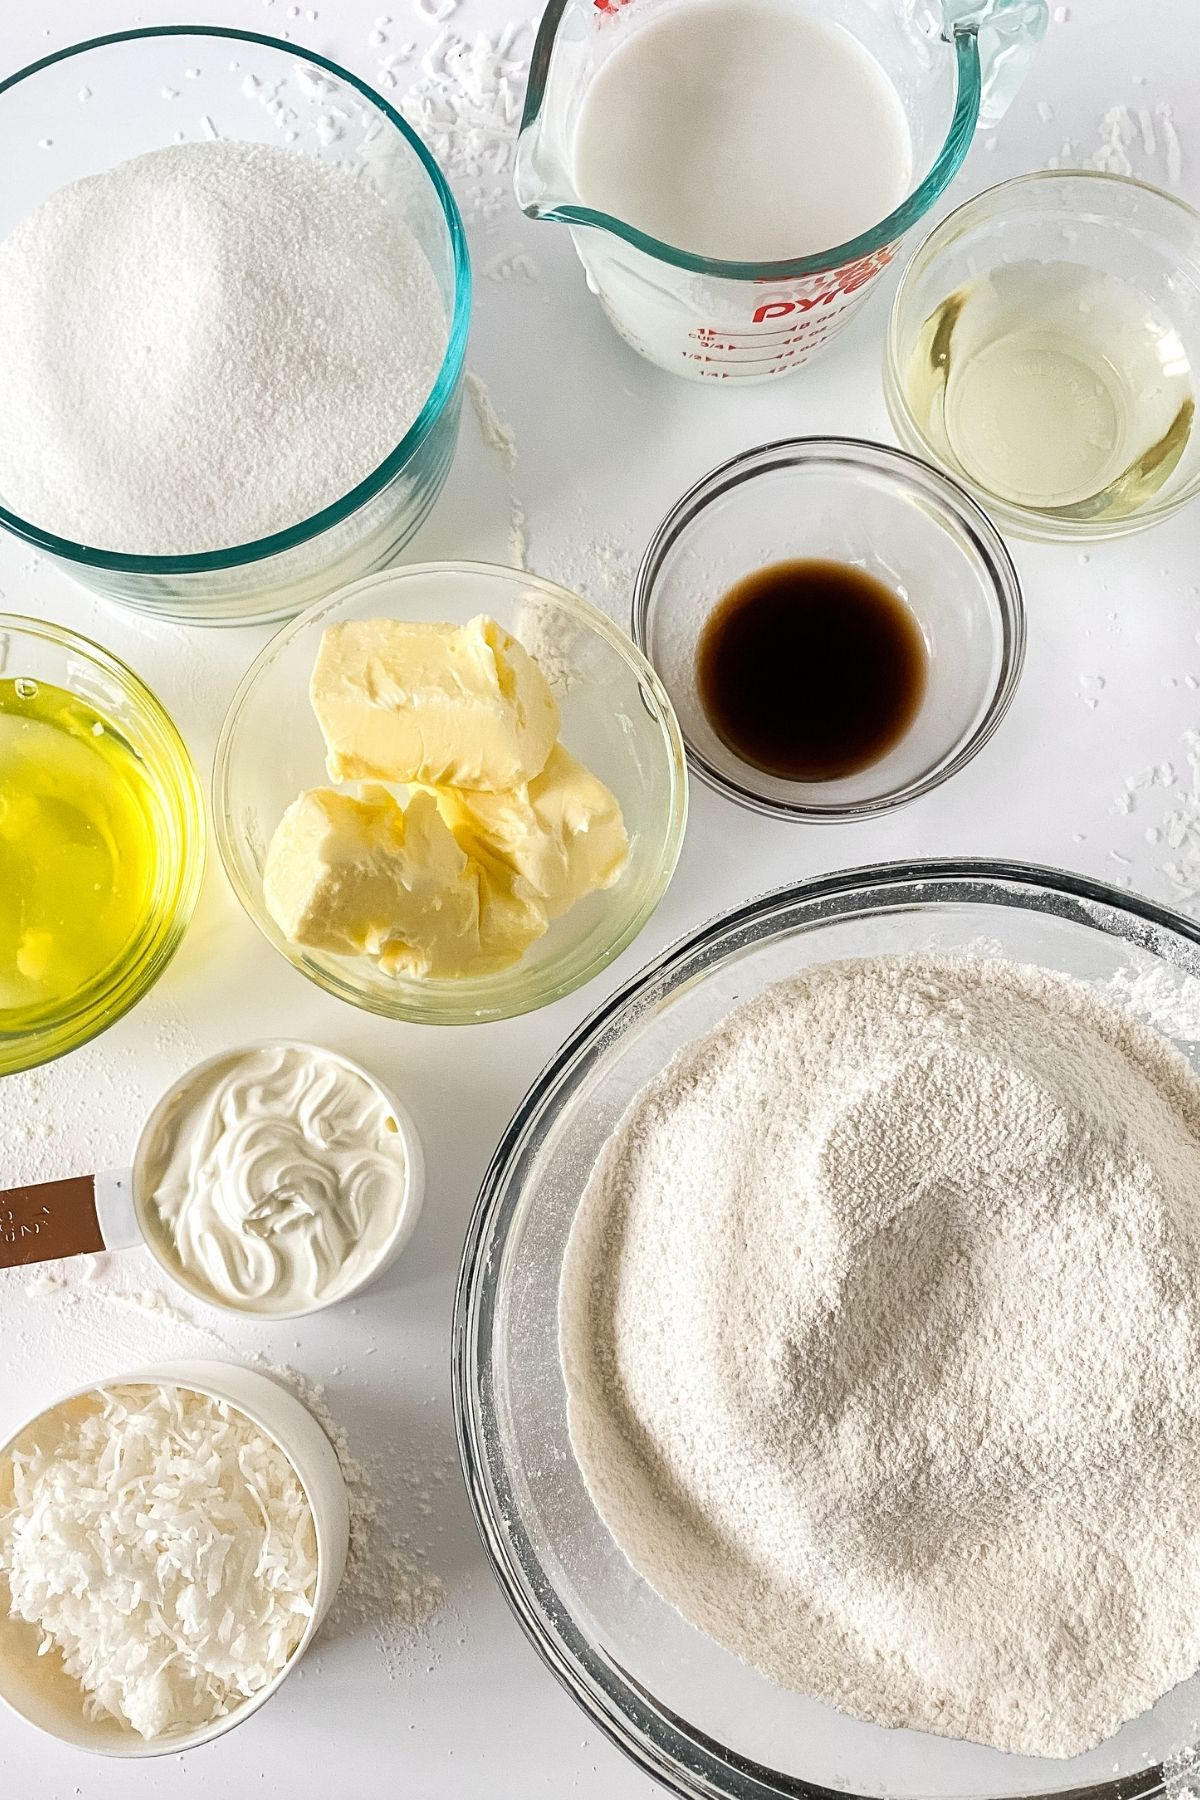 Ingredients for coconut cake